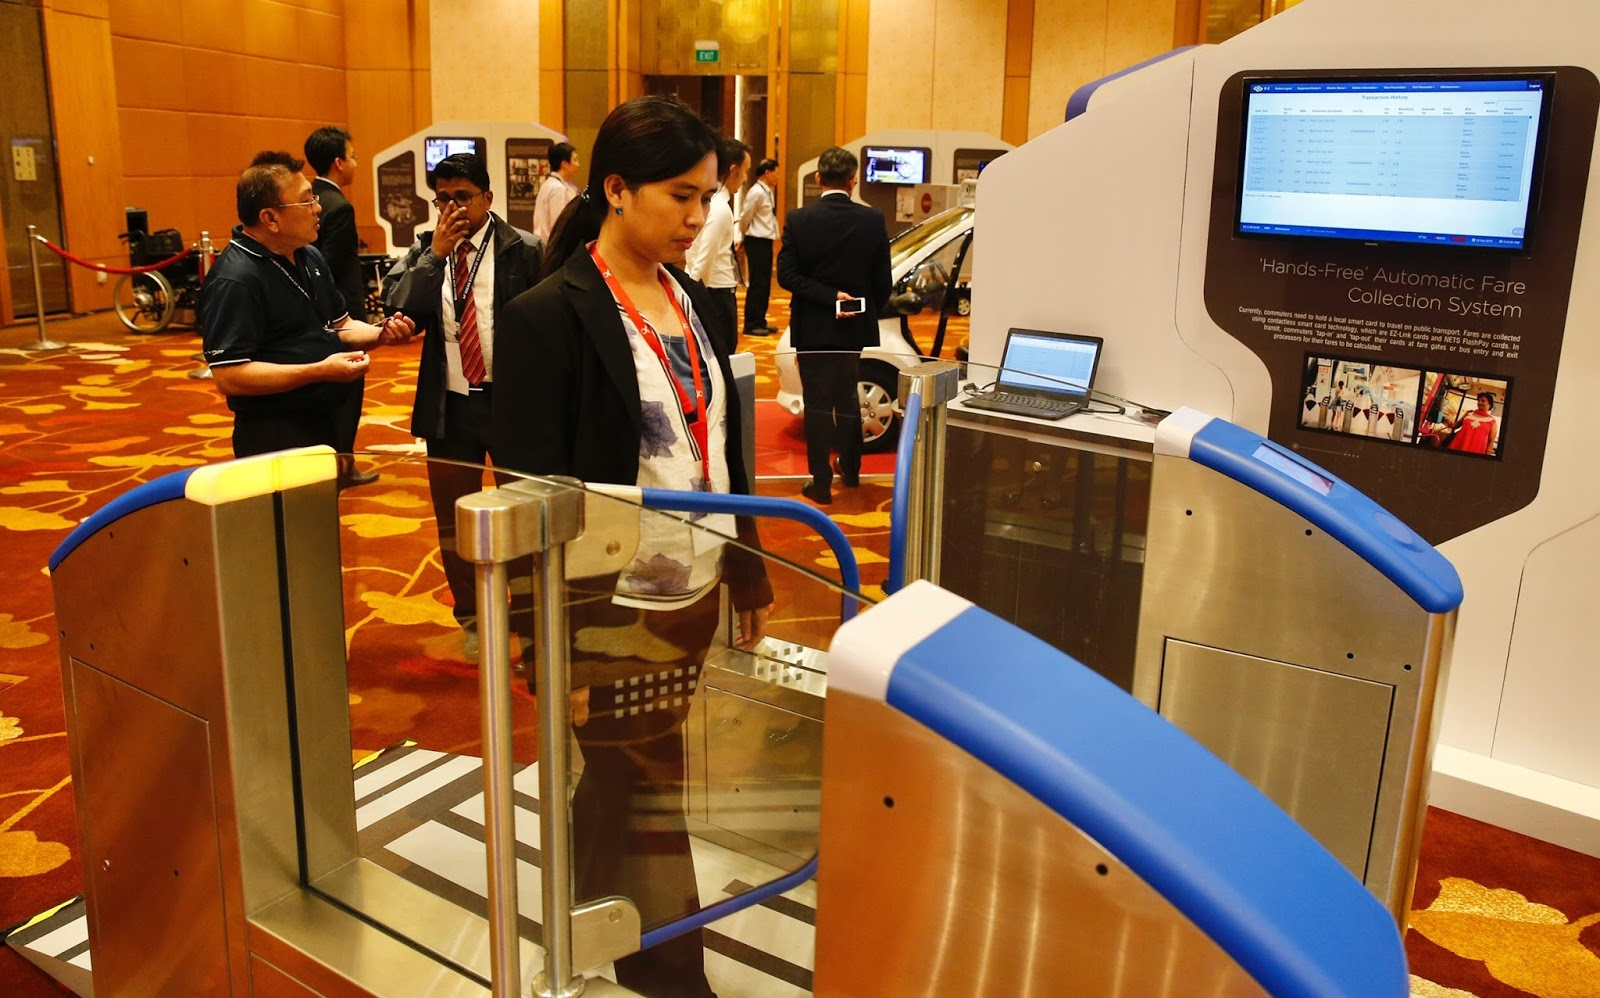 A delegate walking through a mock-up of a hands-free automatic fare collection system gantry on display at the Future of Transport showcase on Thursday (Oct 12), held in conjunction with this year's Asean Transport Ministers' Meeting.